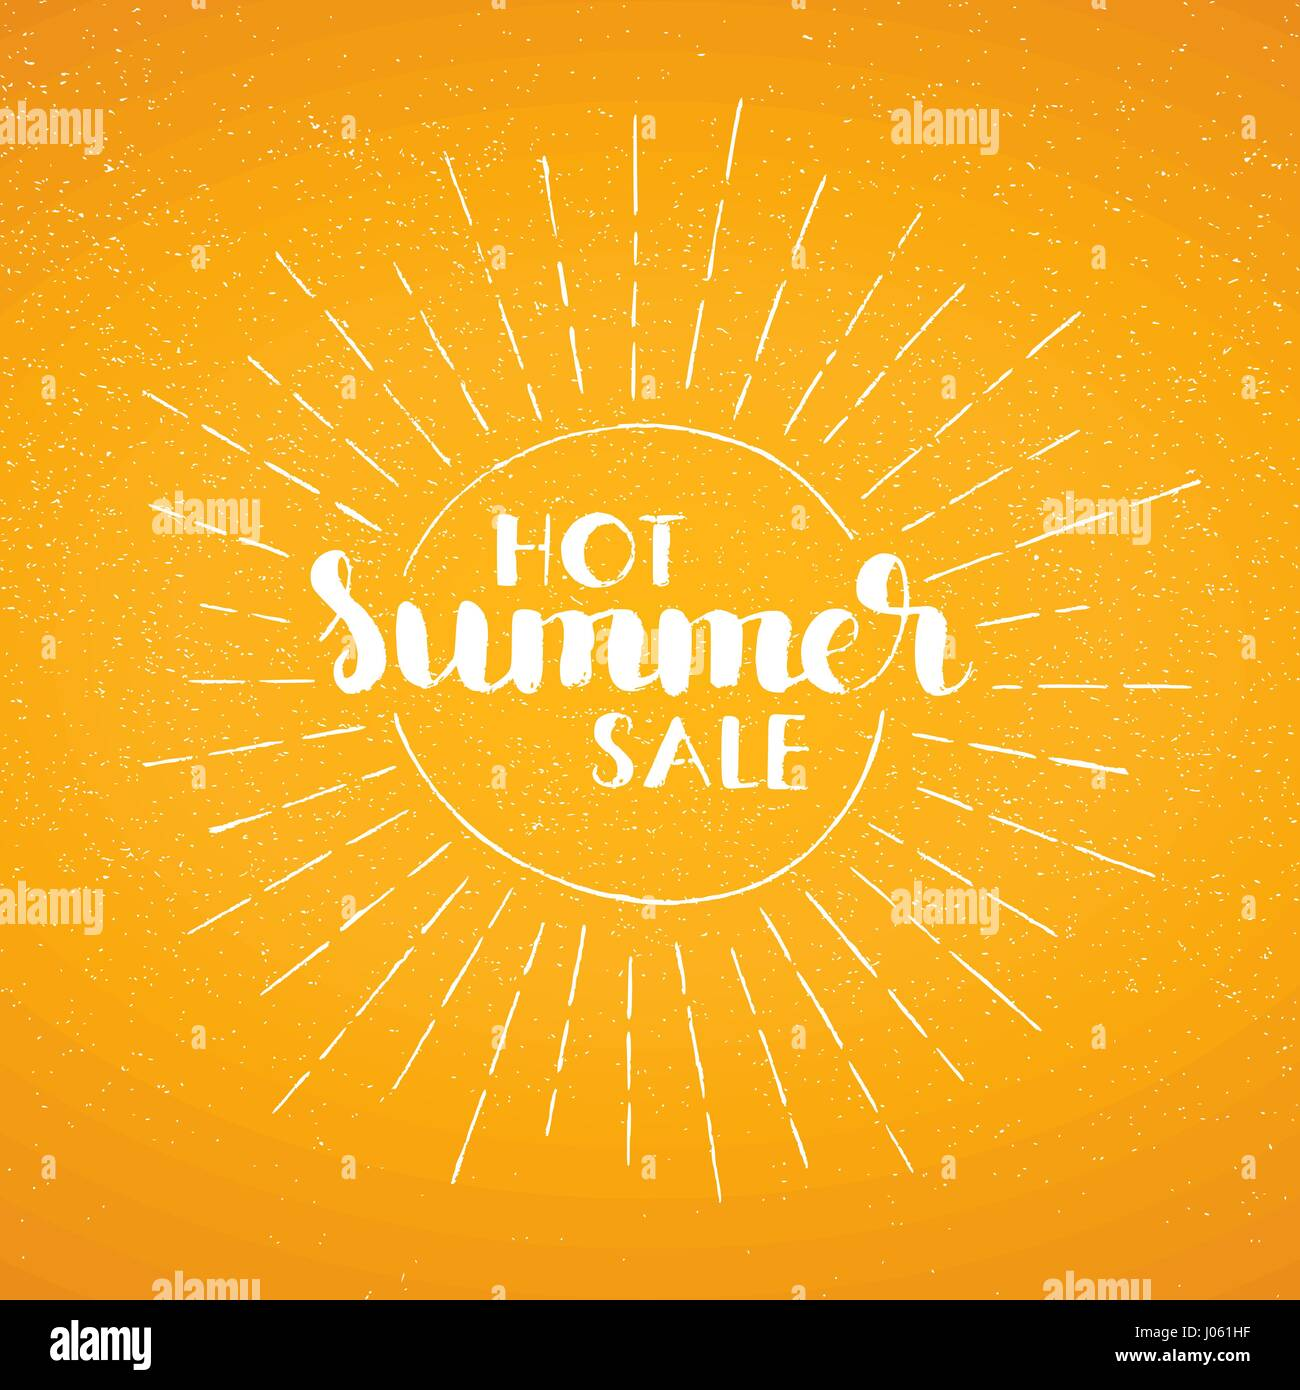 Hot Summer Sale handwritten lettering. Modern vector hand drawn calligraphy with grunge overlay texture over sunny - Stock Vector